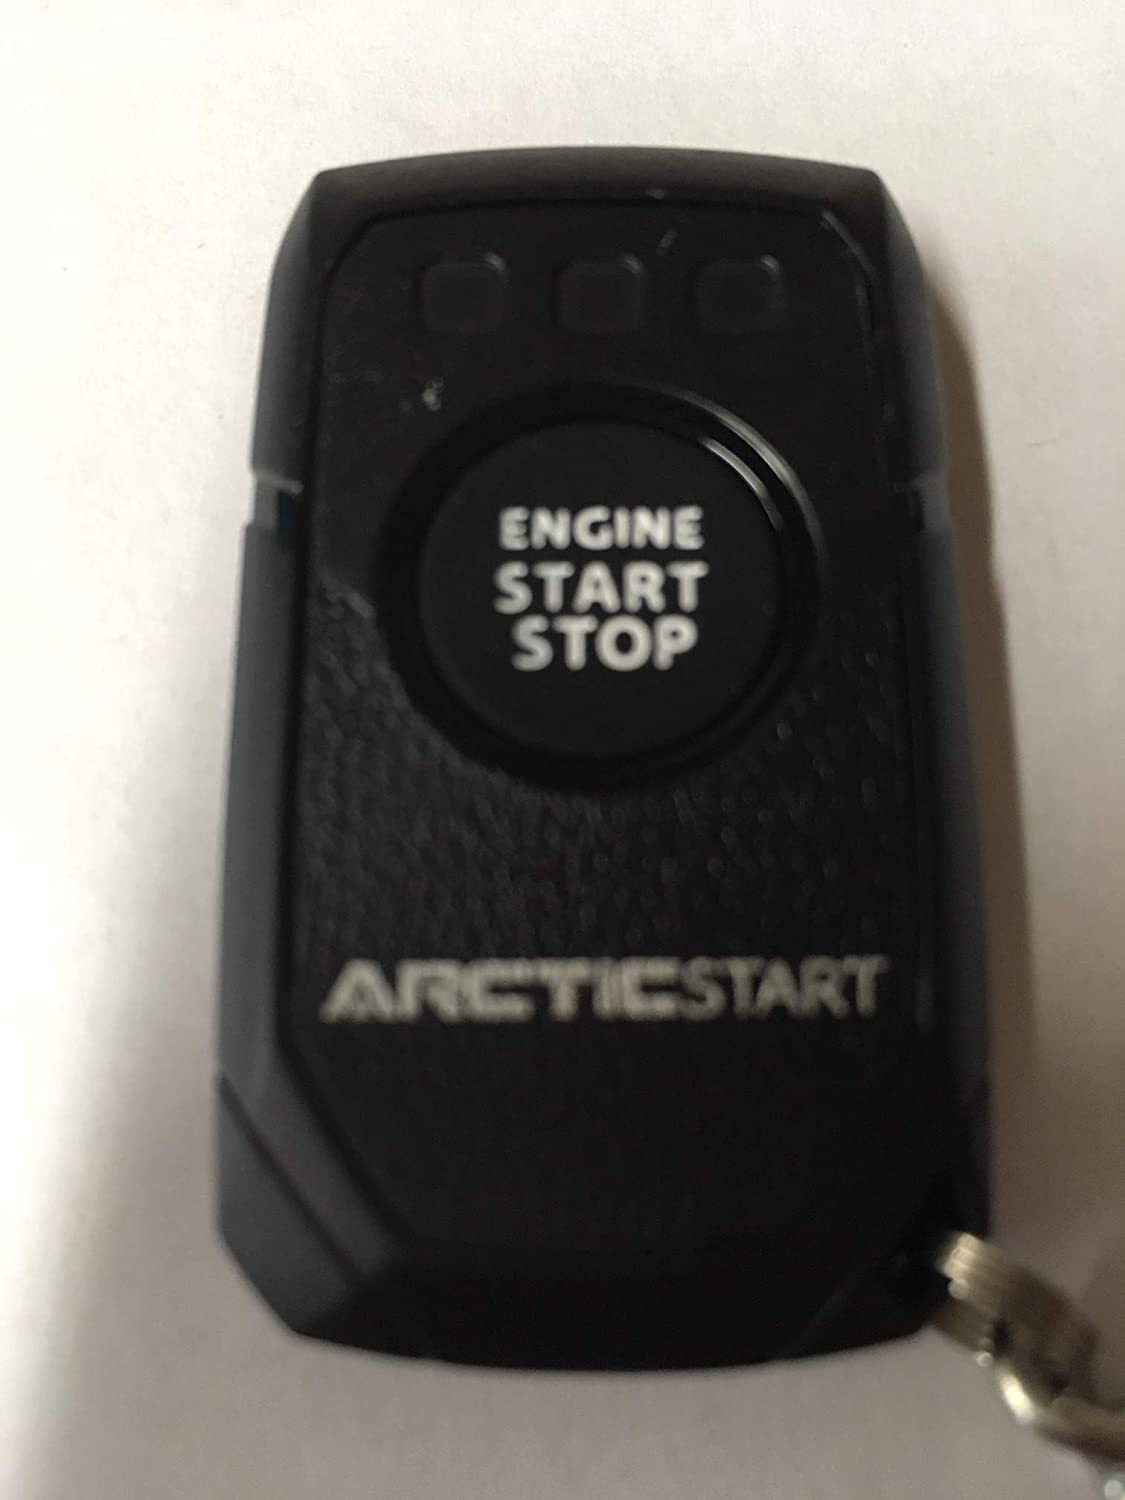 Genuine Arctic Start AR1WR2R-AM Replacement Remote Control Includes Programming Instructions Compustar